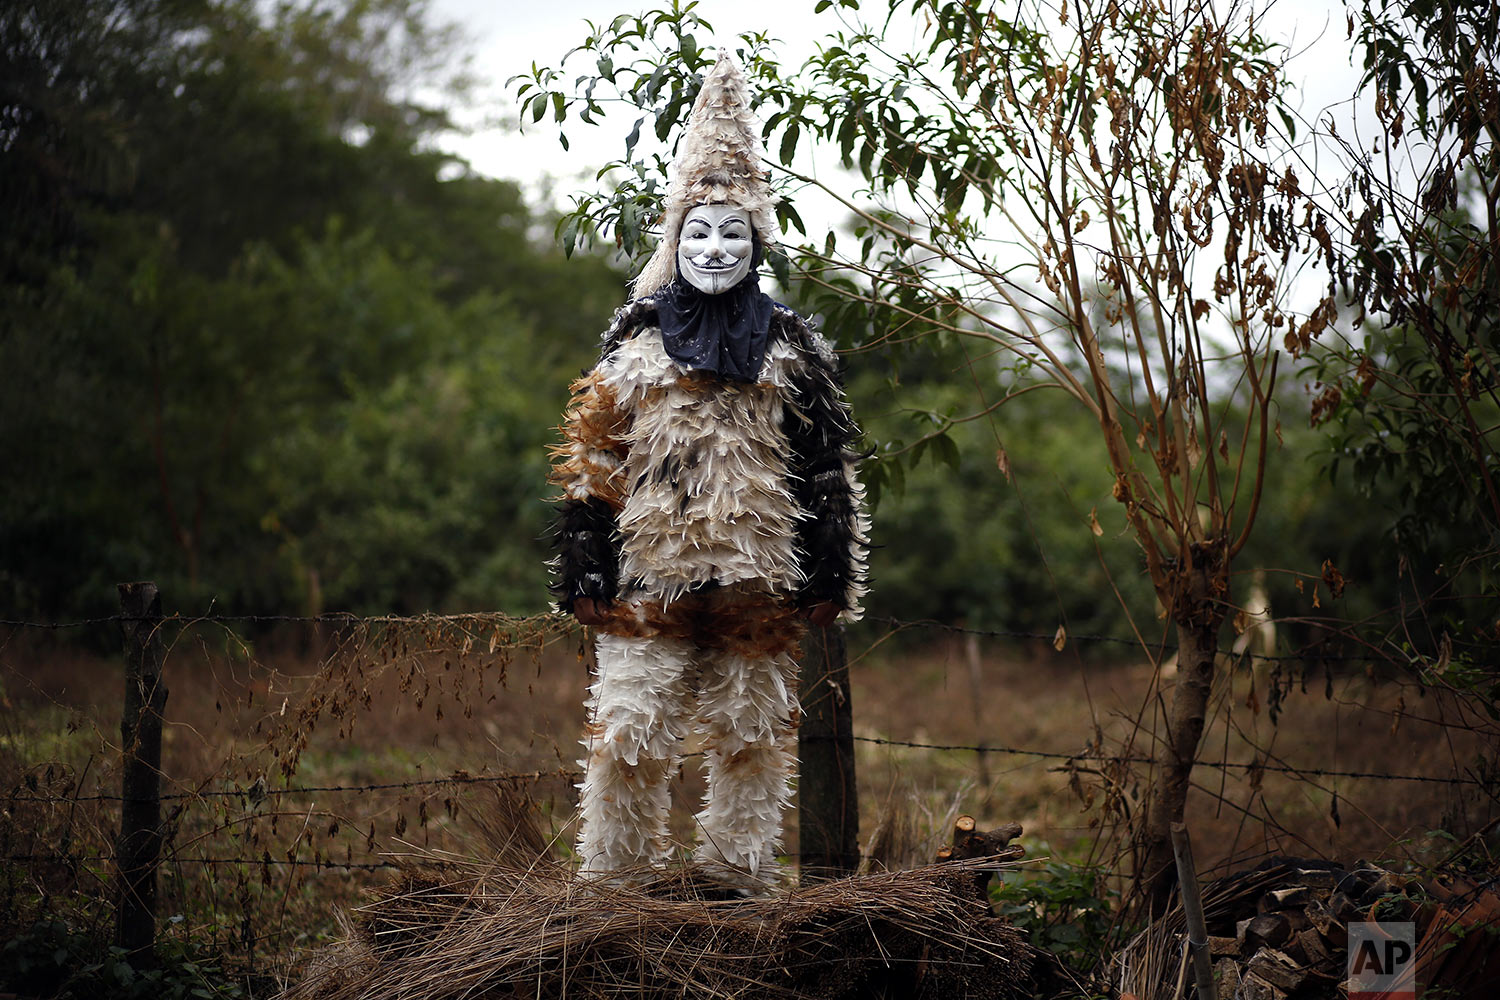 Farmer Nicolas Servin poses for a portrait wearing his feathered costume in honor of St. Francis Solano in Emboscada, Paraguay, Wednesday, July 24, 2019. Servin is thanking the Saint for a good harvest. (AP Photo/Jorge Saenz)